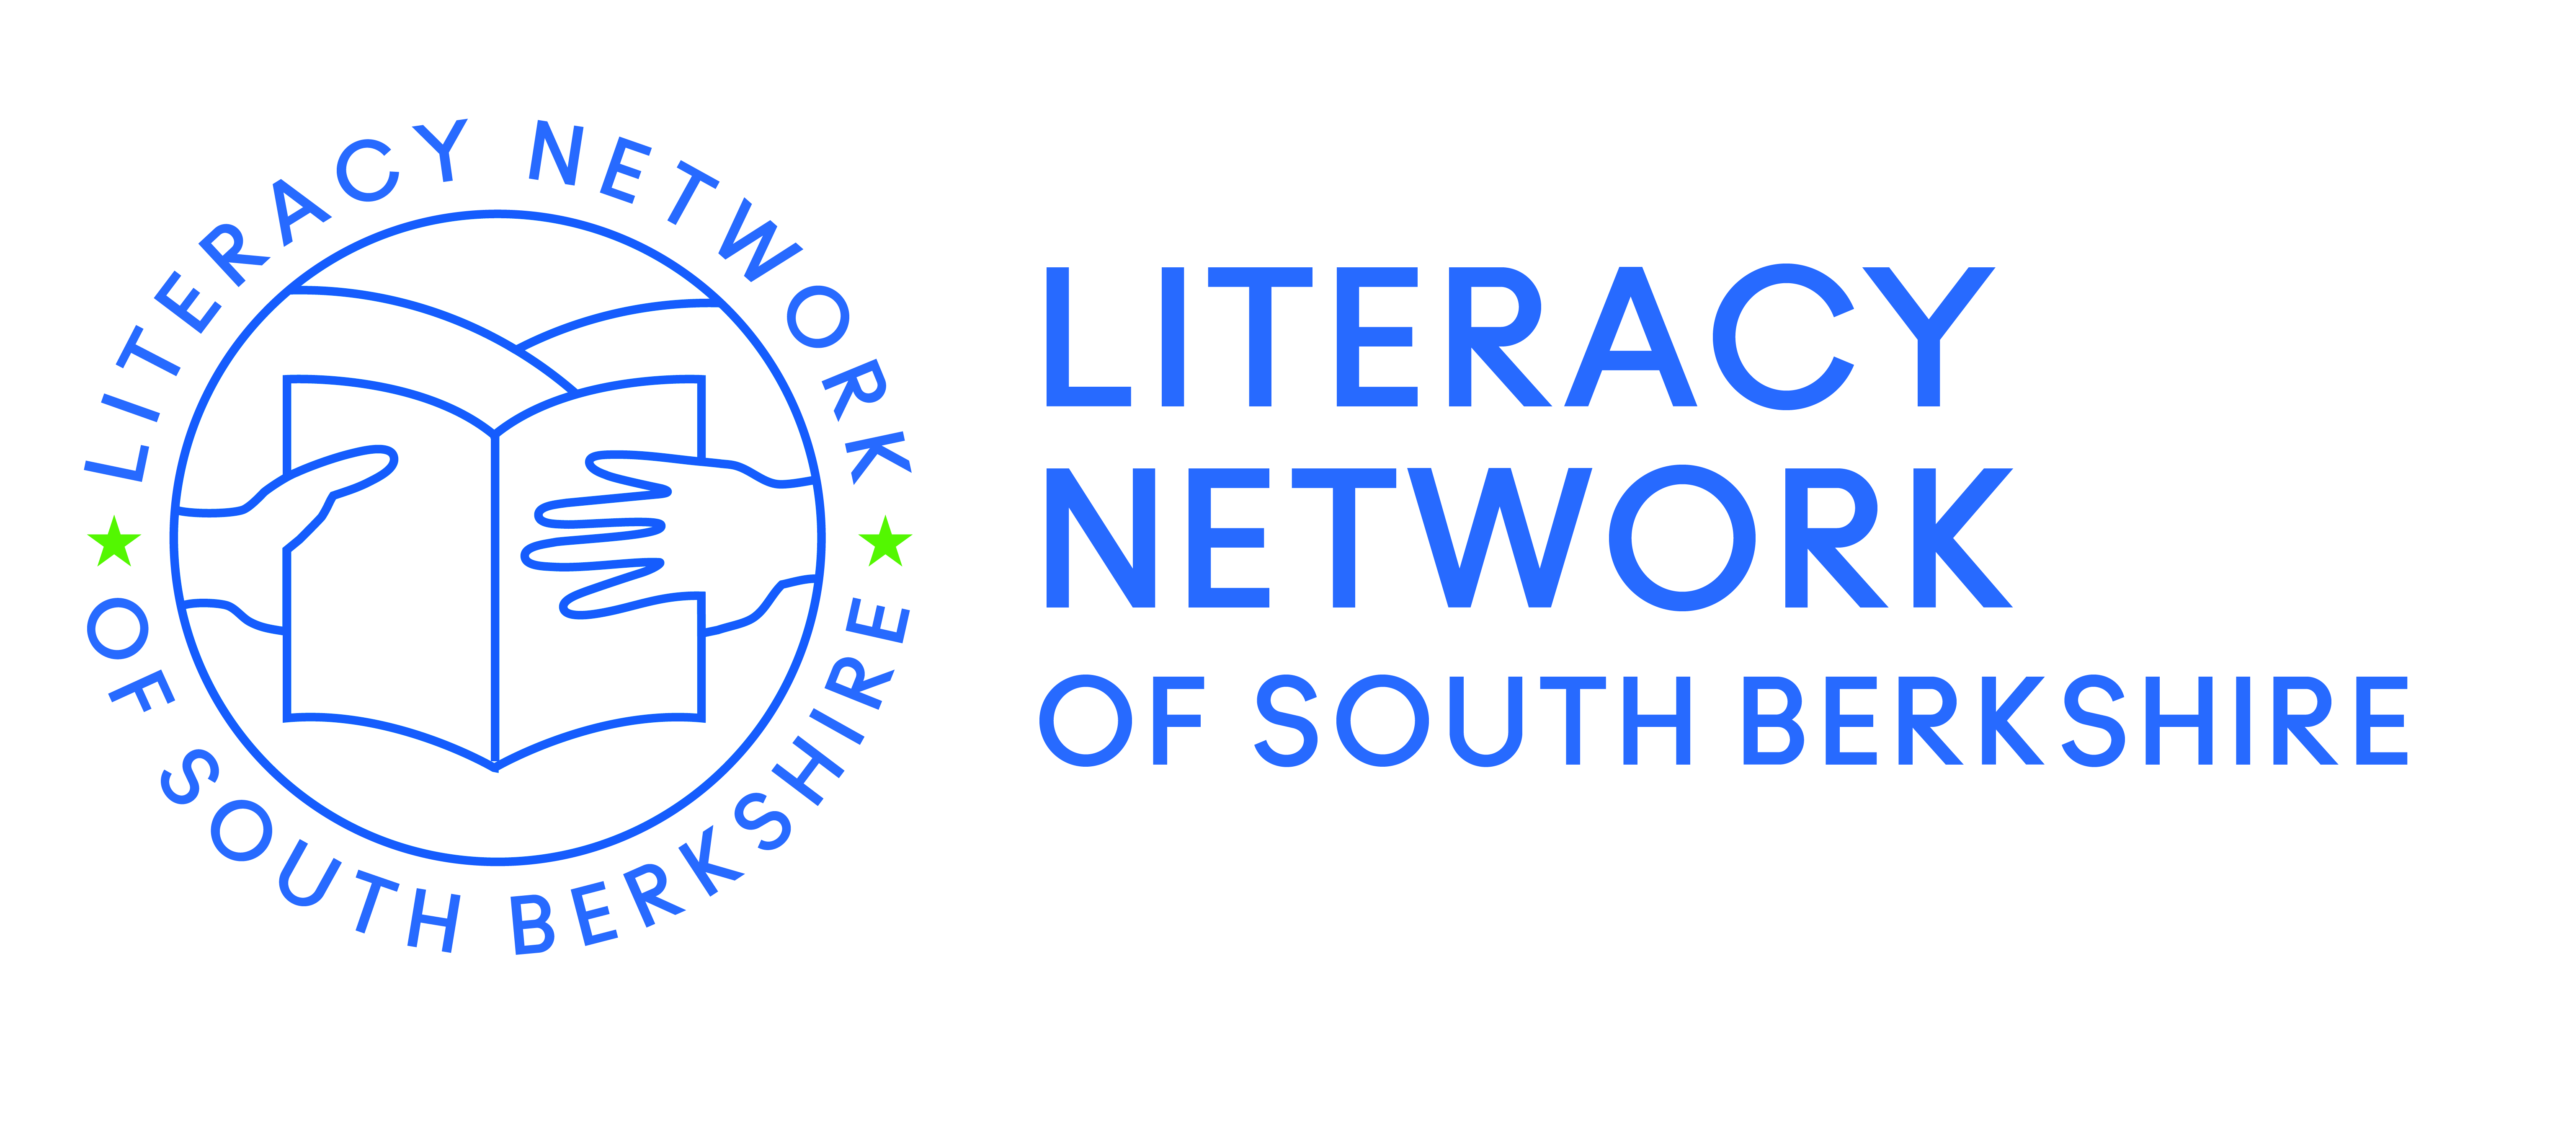 Literacy Network of South Berkshire